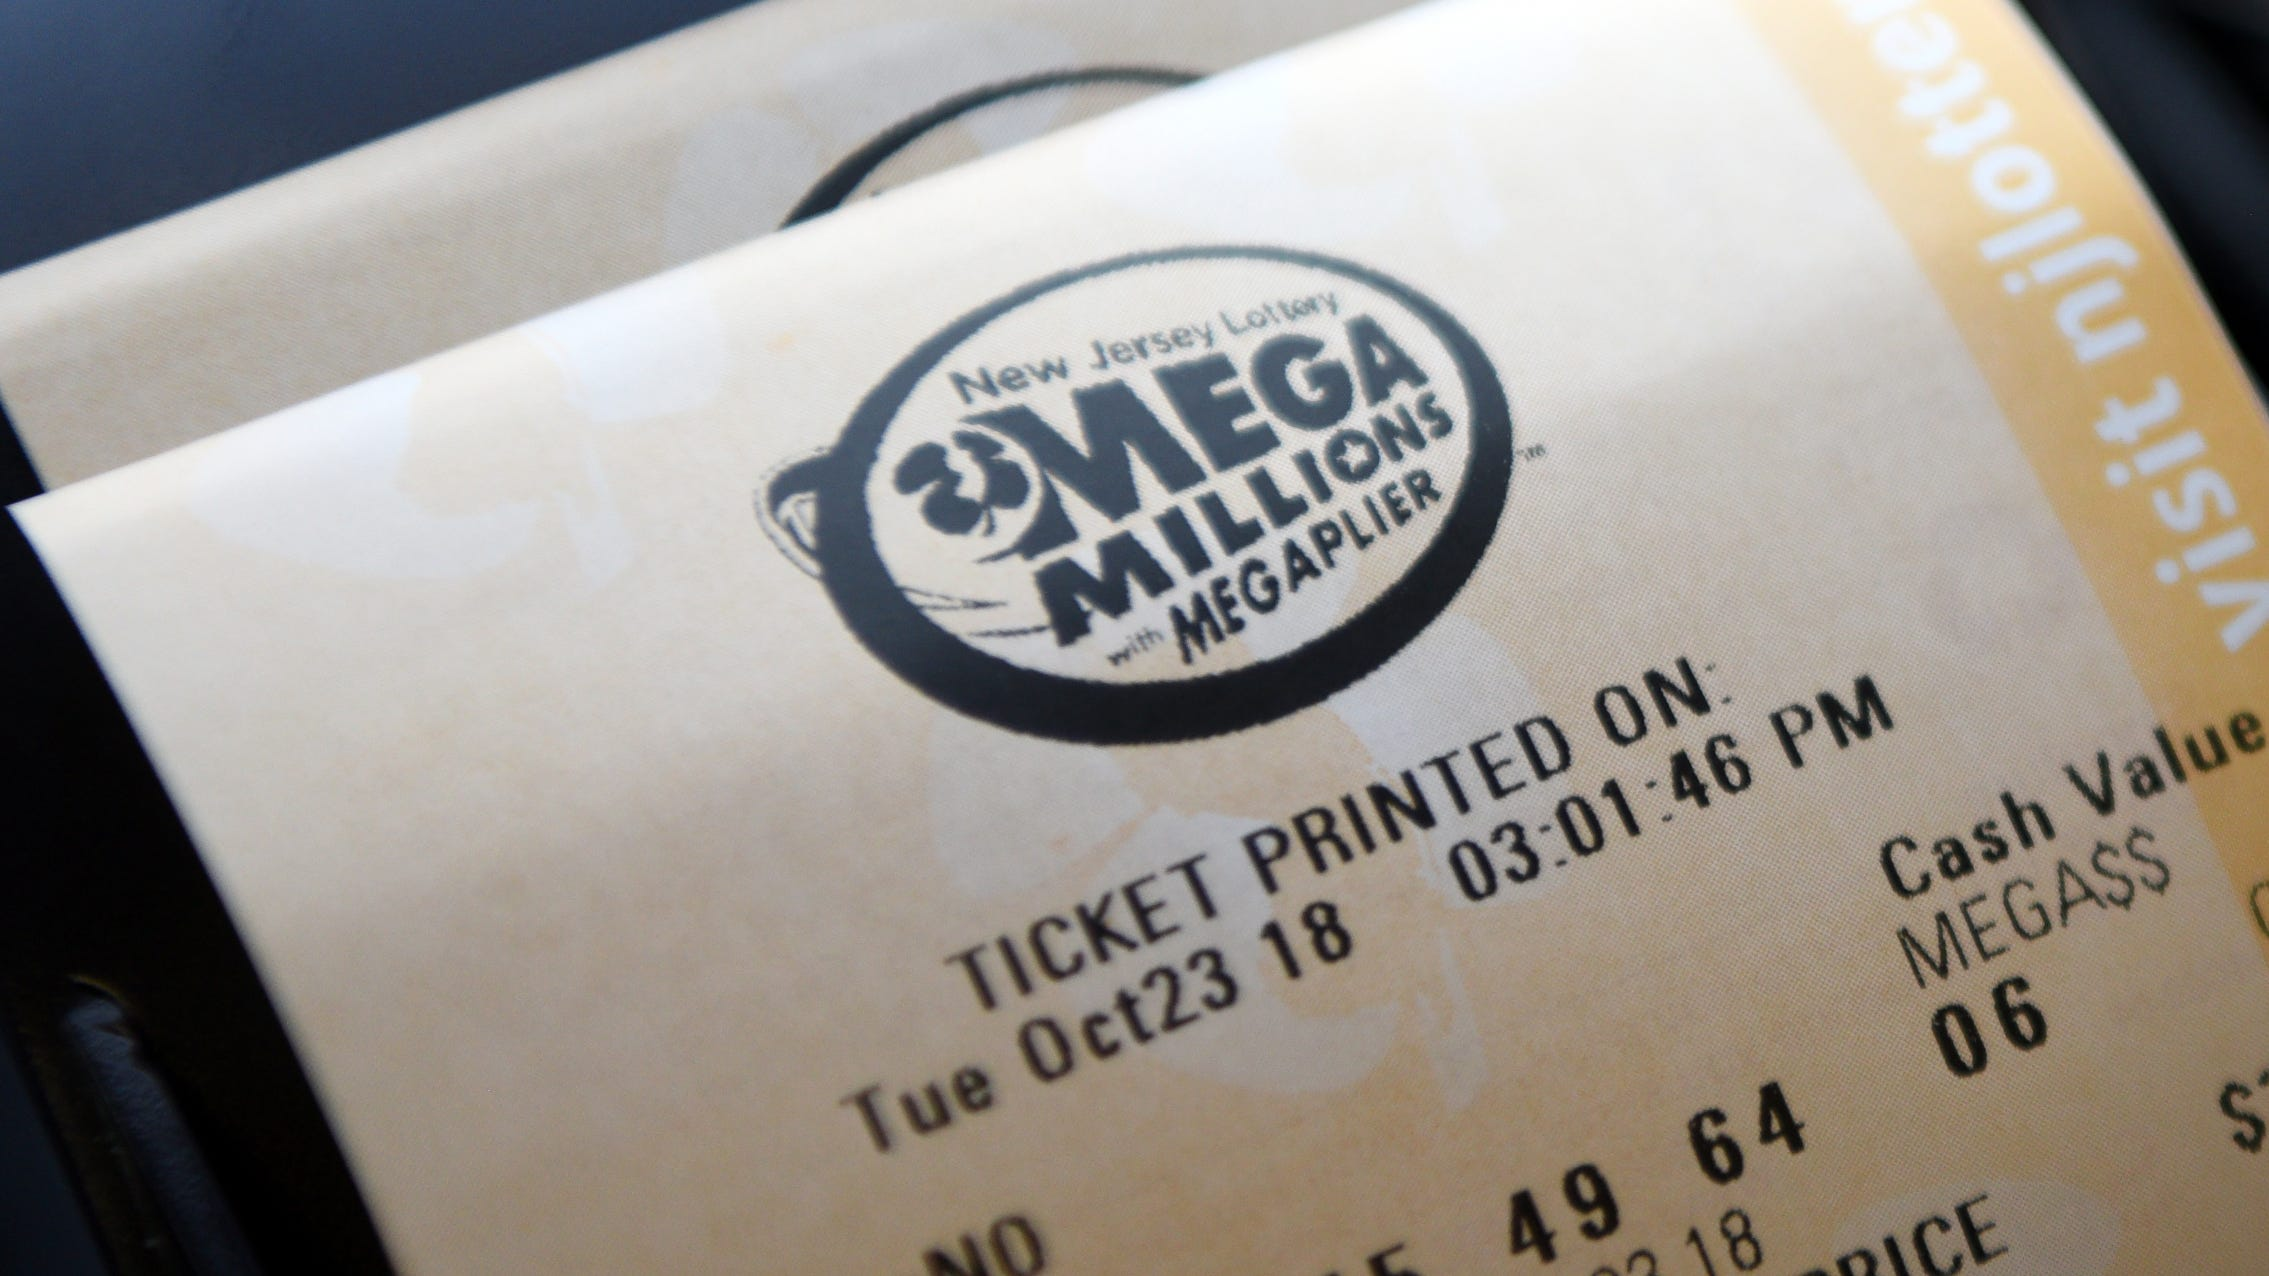 Here are 13 things more likely to happen than winning the Mega Millions jackpot